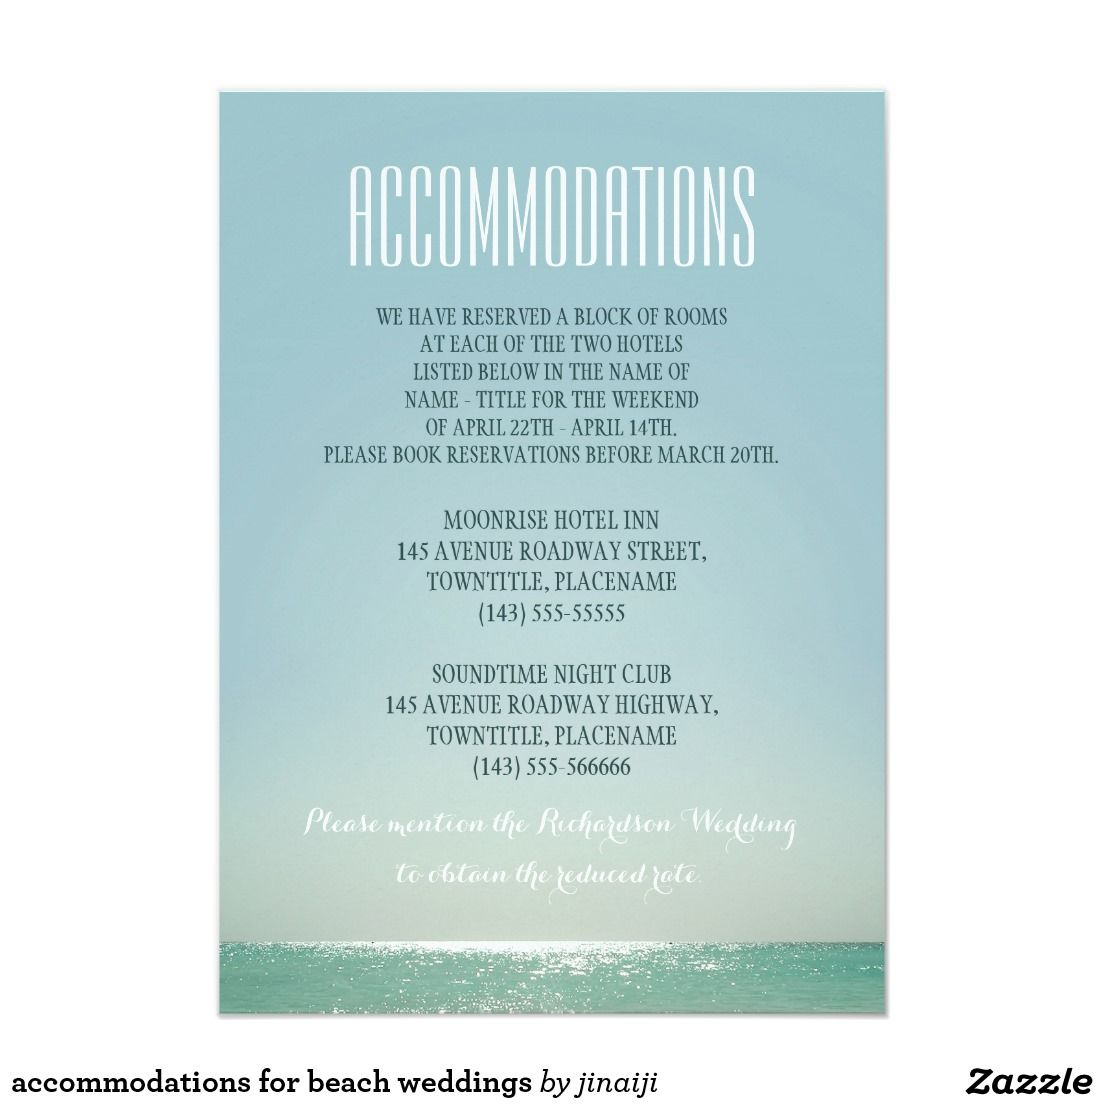 Accommodations for beach weddings beach wedding invitations accommodations for beach weddings stopboris Gallery